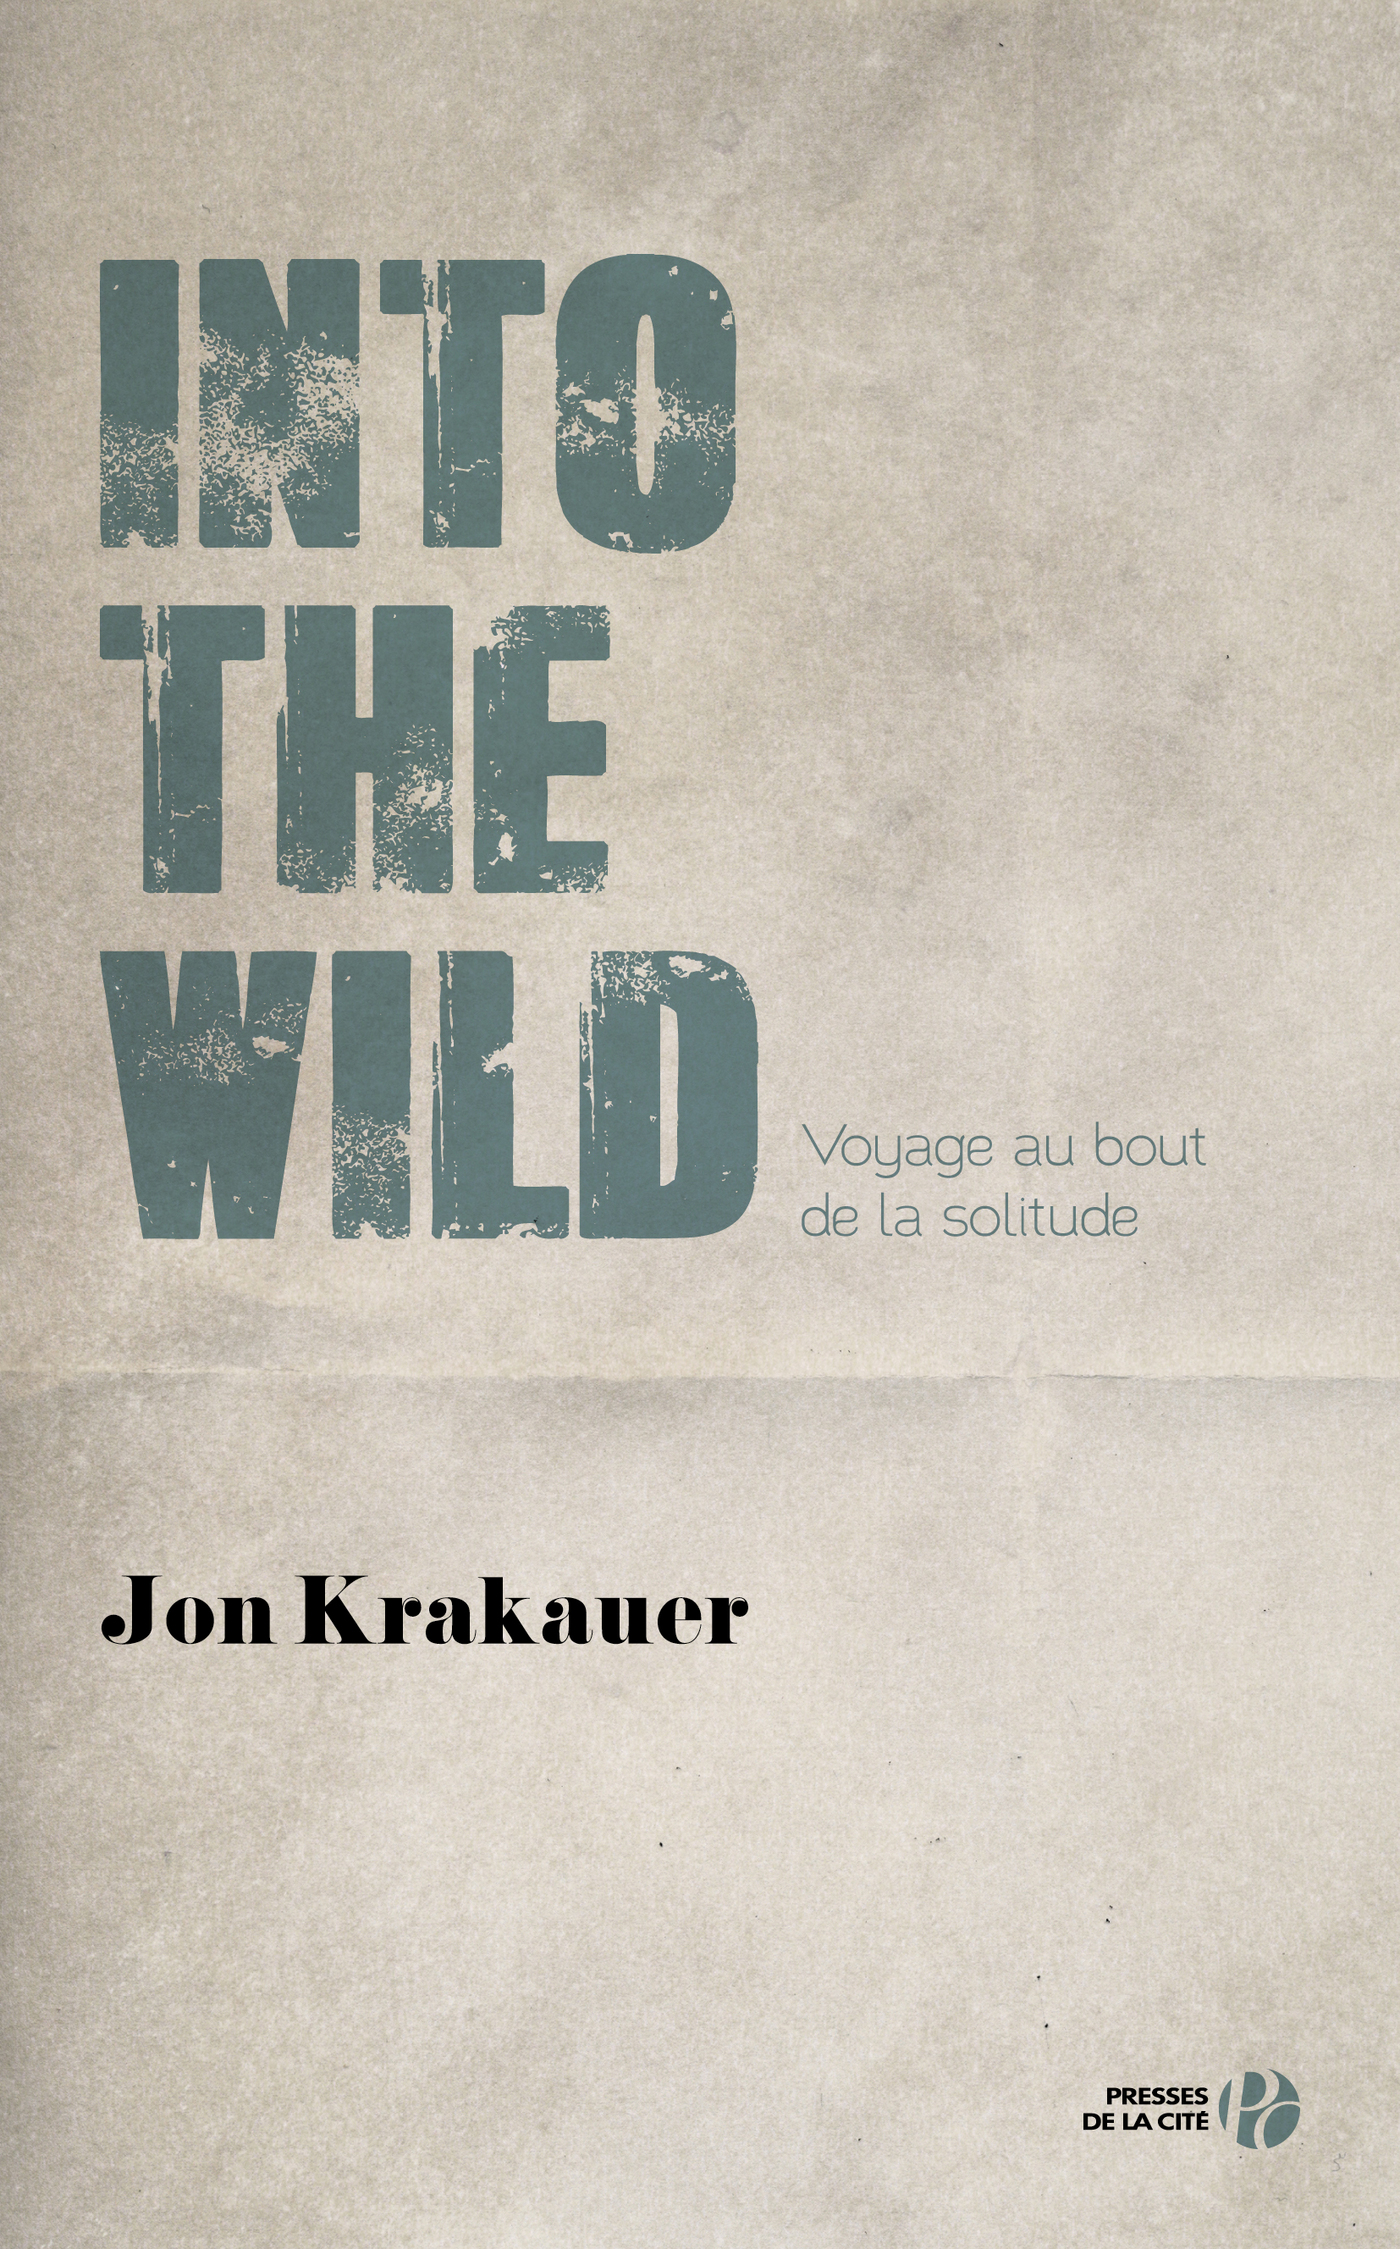 rhetoric in into the wild I have a few but they're bad so i guess i need some examples.